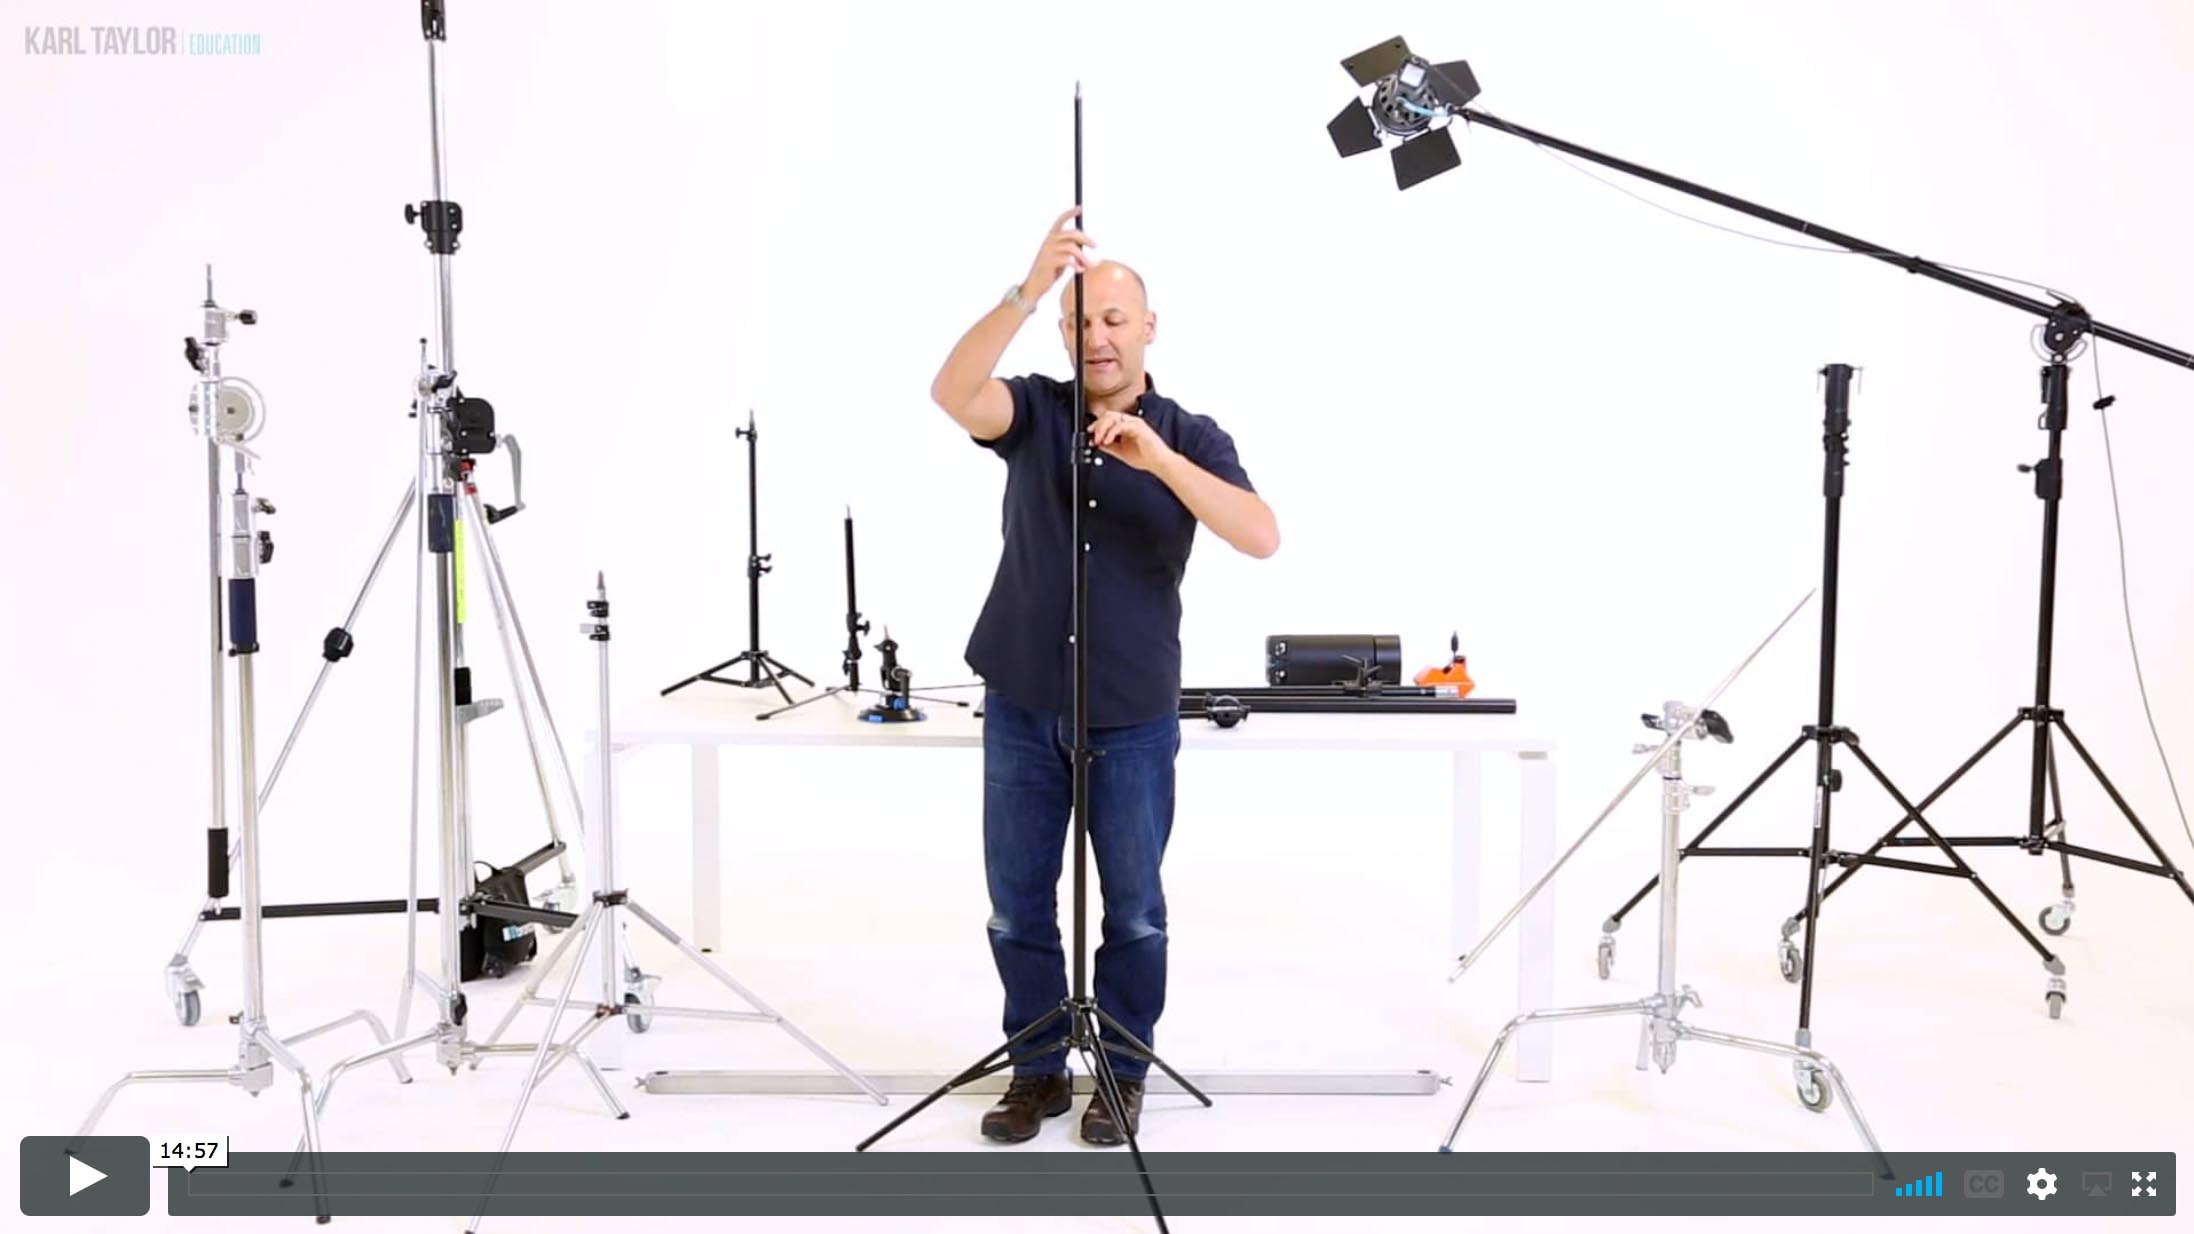 09. Lighting stands and supports